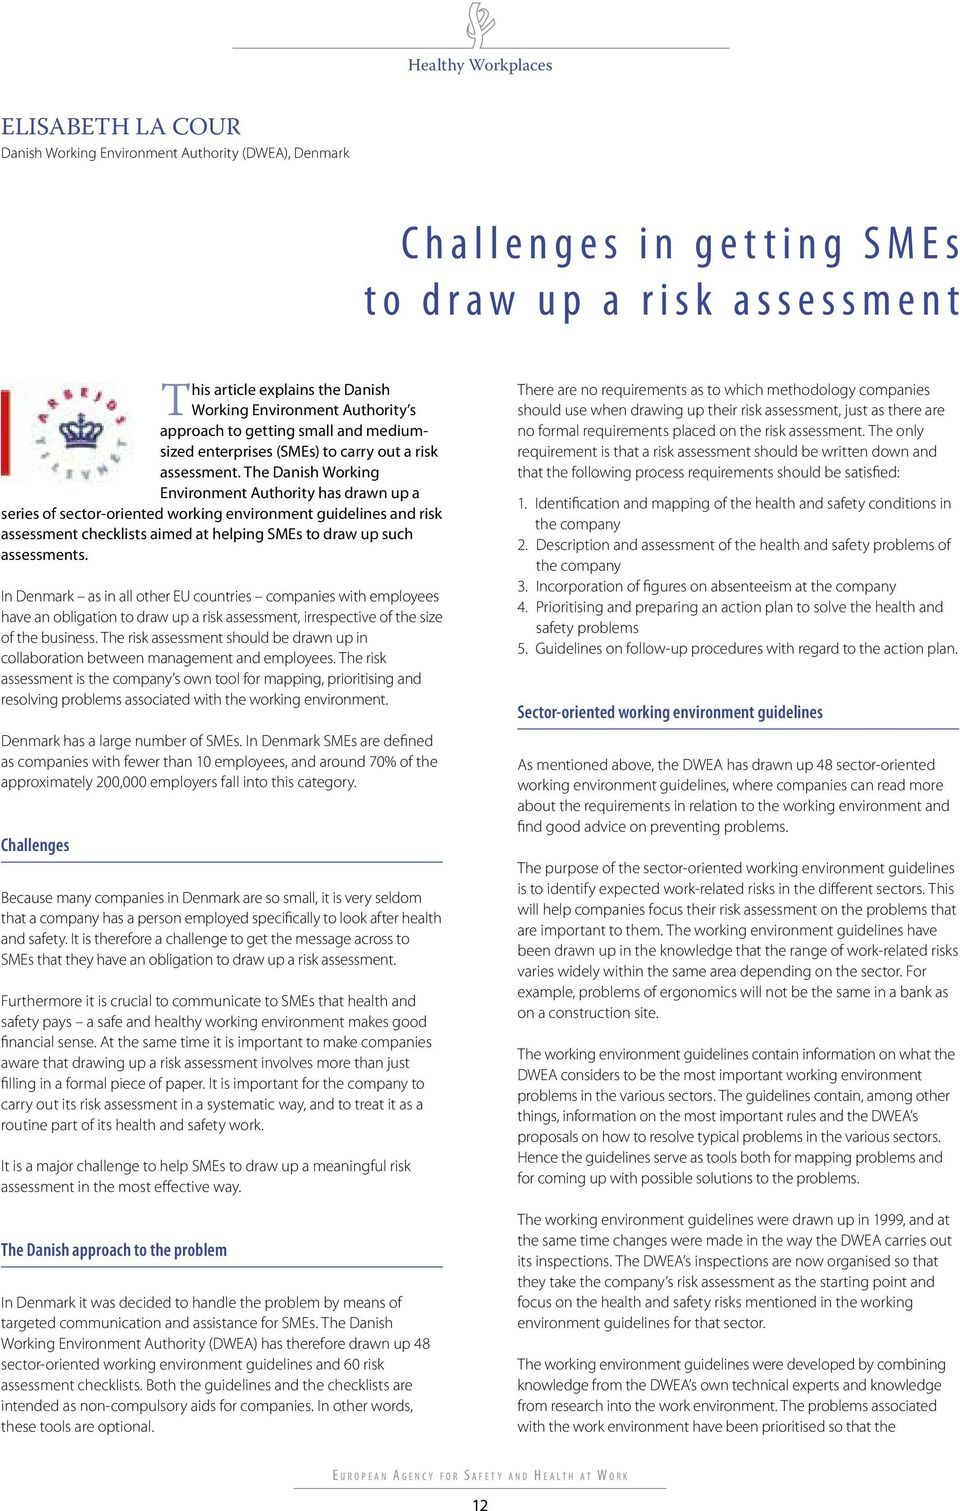 The Danish Working Environment Authority has drawn up a series of sector-oriented working environment guidelines and risk assessment checklists aimed at helping SMEs to draw up such assessments.